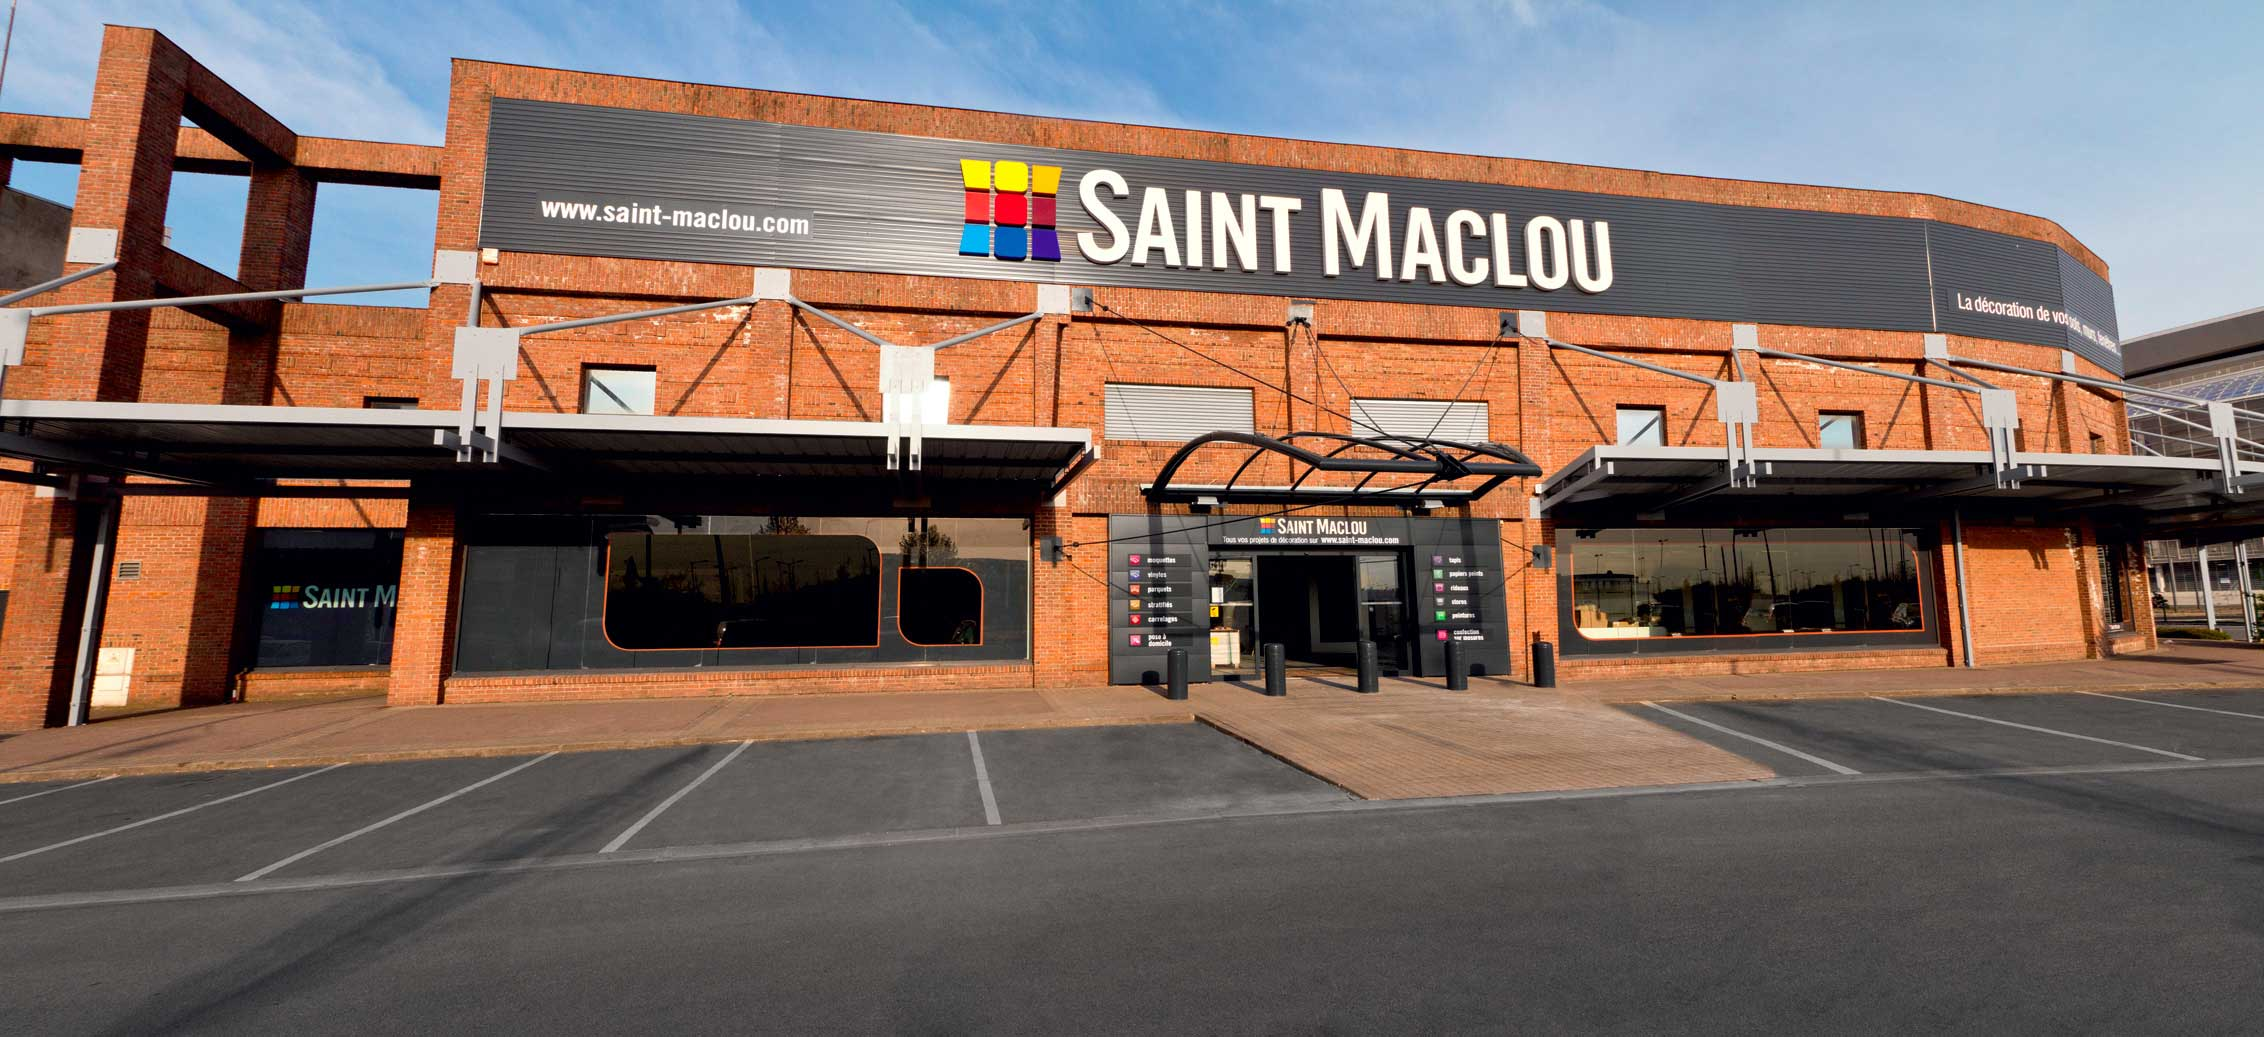 Stunning Saint Maclou Saint Priest Pictures - Amazing House Design ...